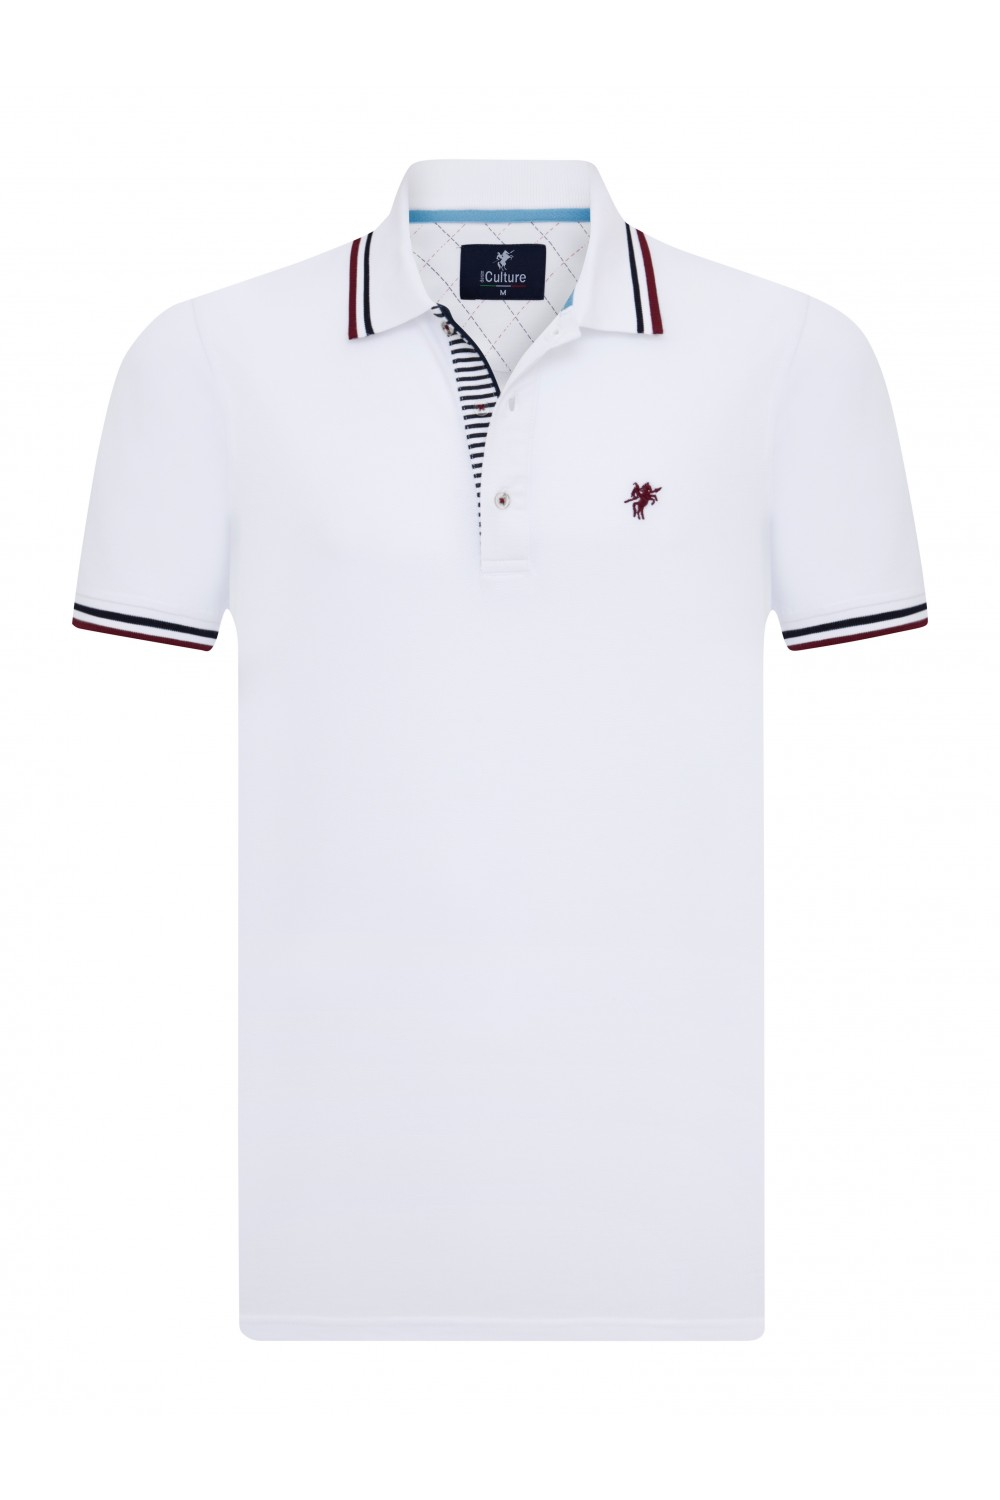 Men's Poloshirt Knitted White Cotton